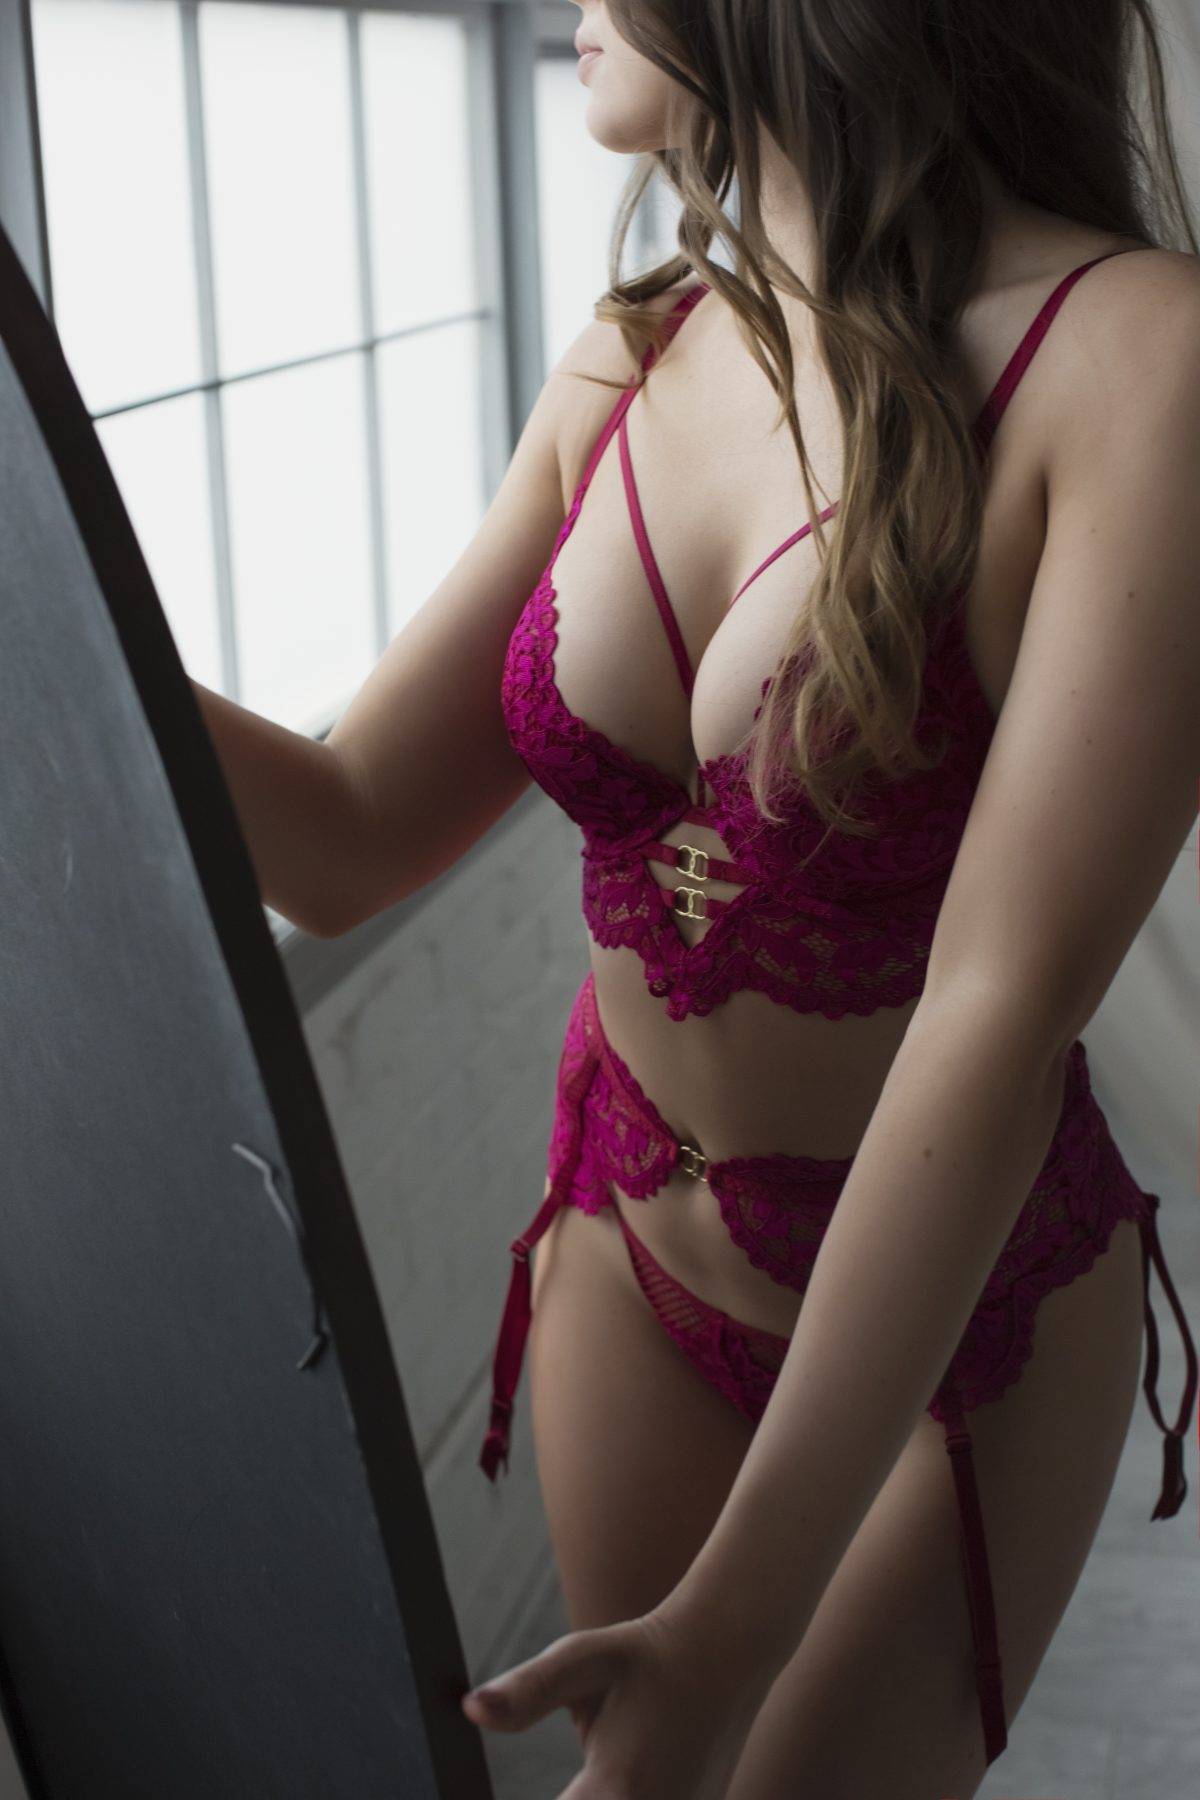 Toronto escorts companion upscale Blair Interests Duo Non-smoking Age Young Figure Slender Petite Breasts Natural Hair Brunette Ethnicity European Tattoos None Arrival